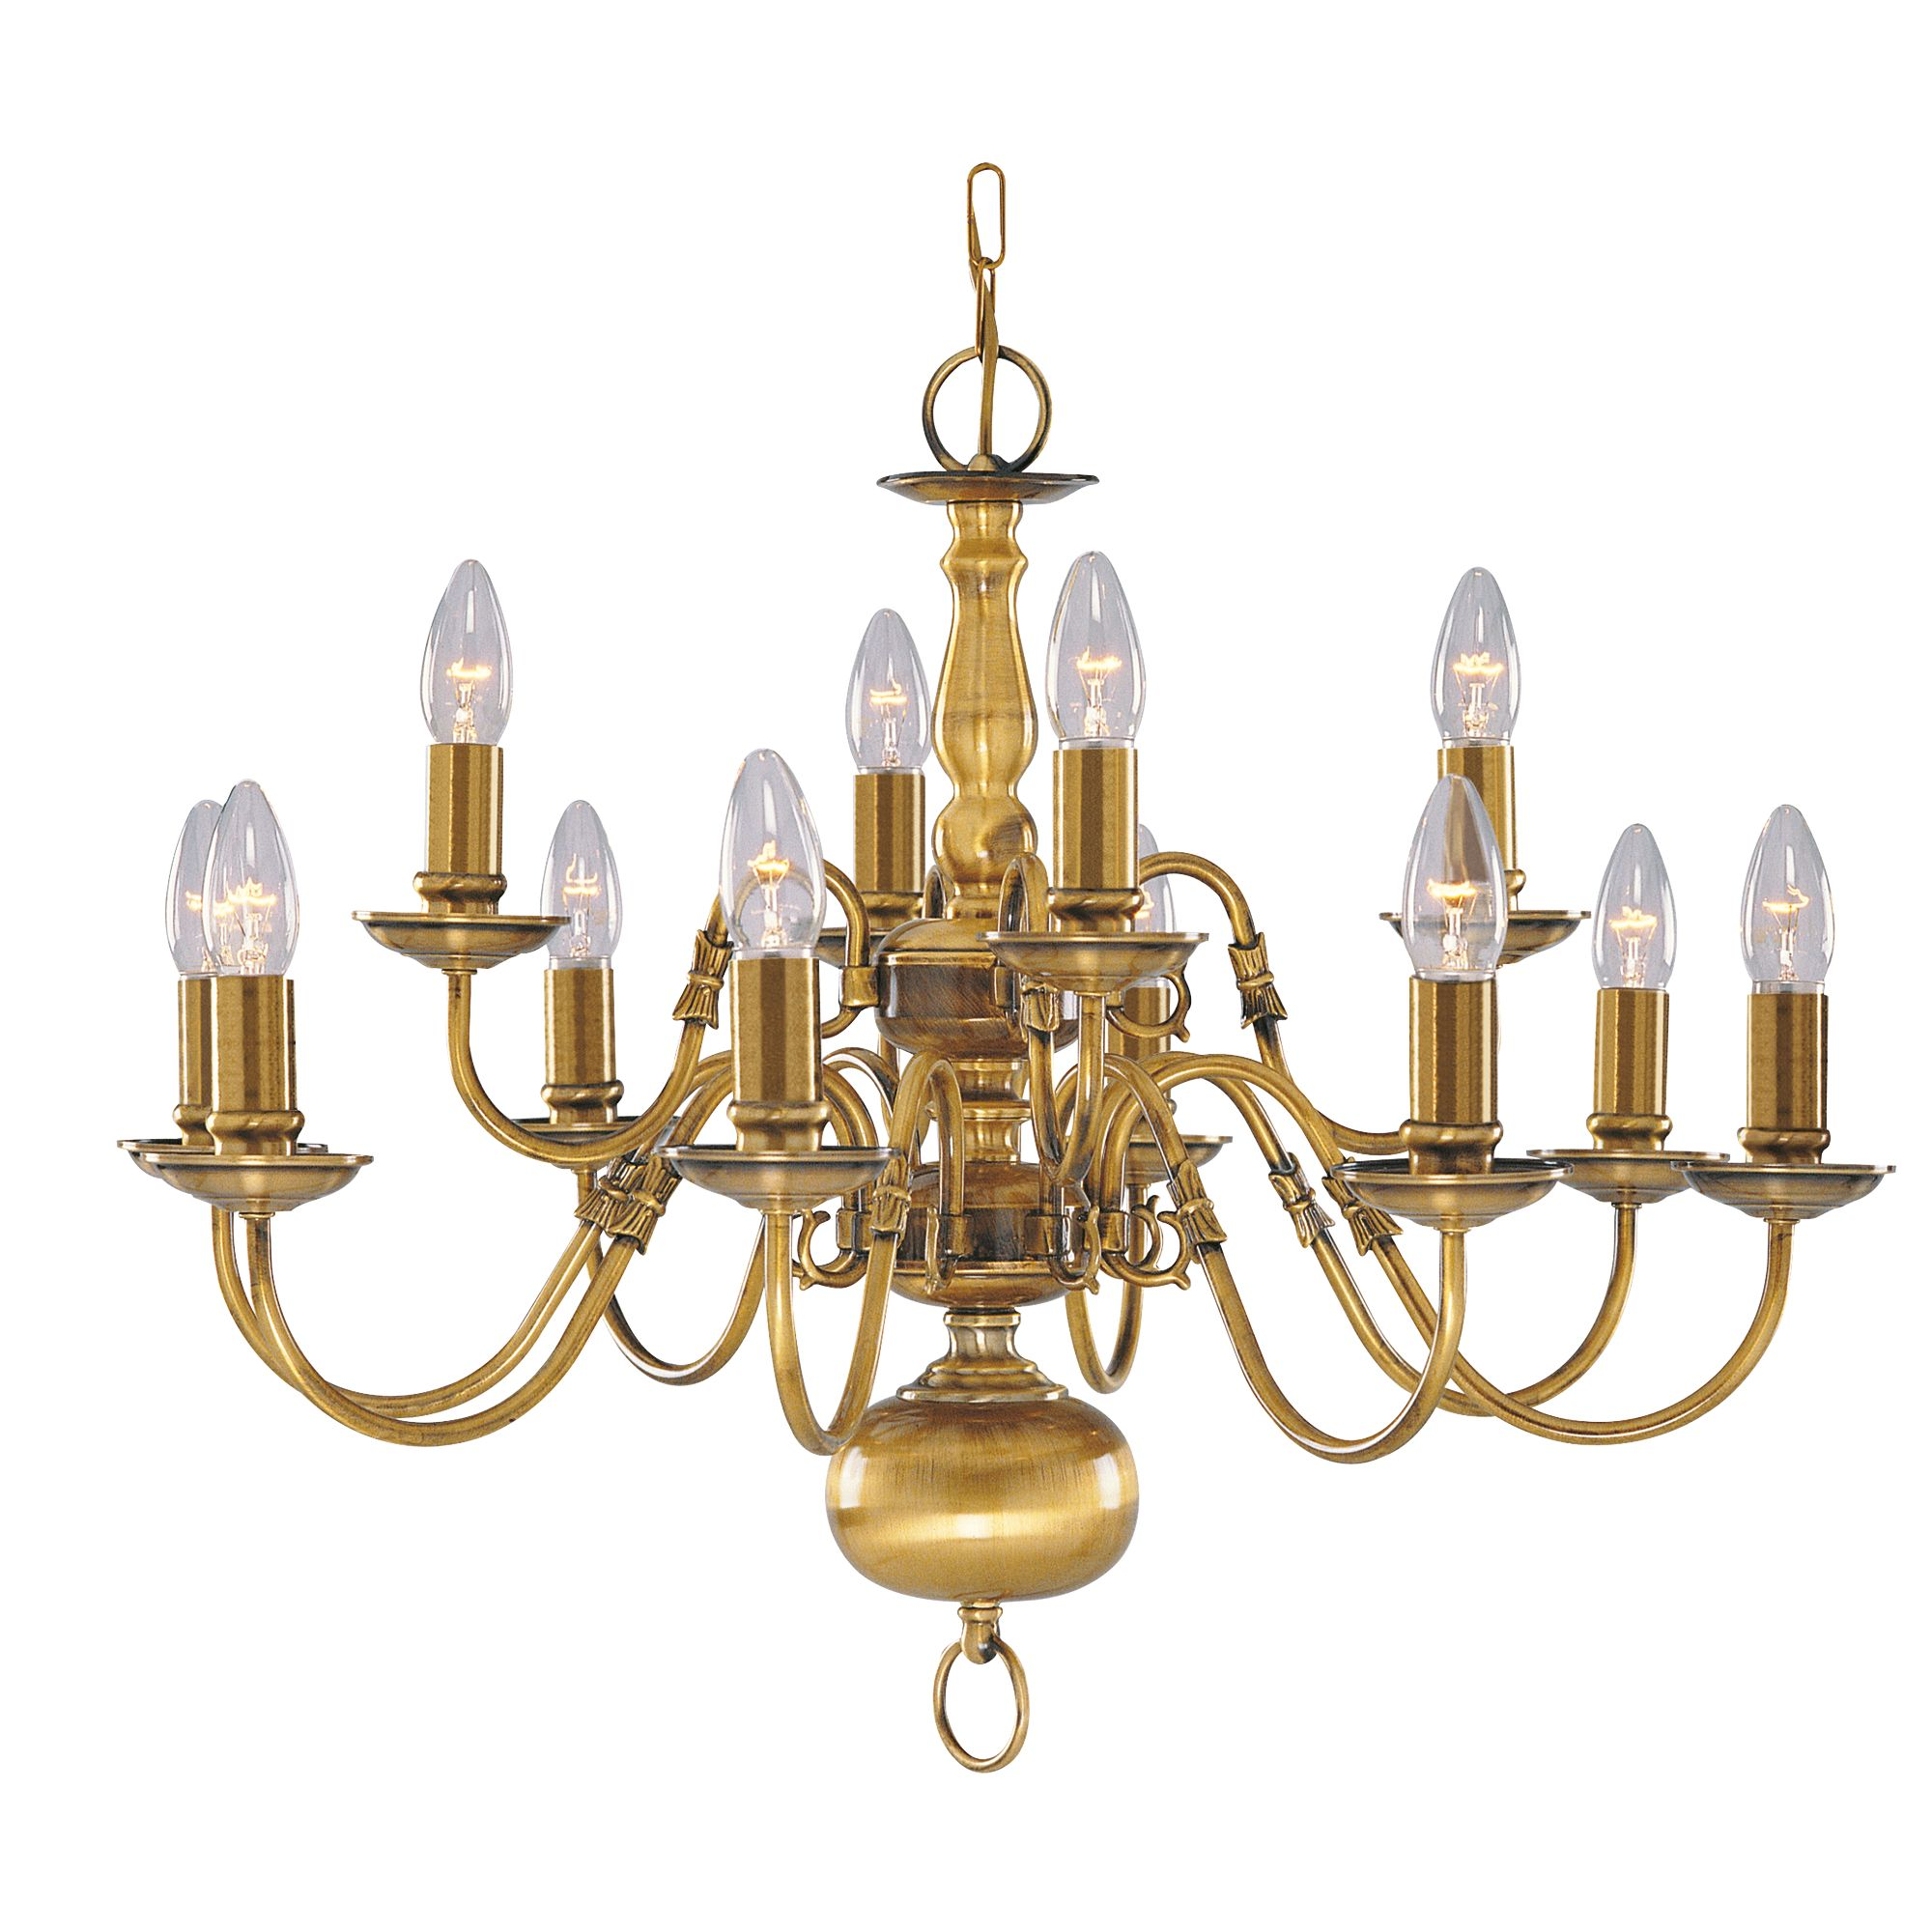 Flemish Solid Antique Brass 12 Light Chandelier With Metal Candle Covers